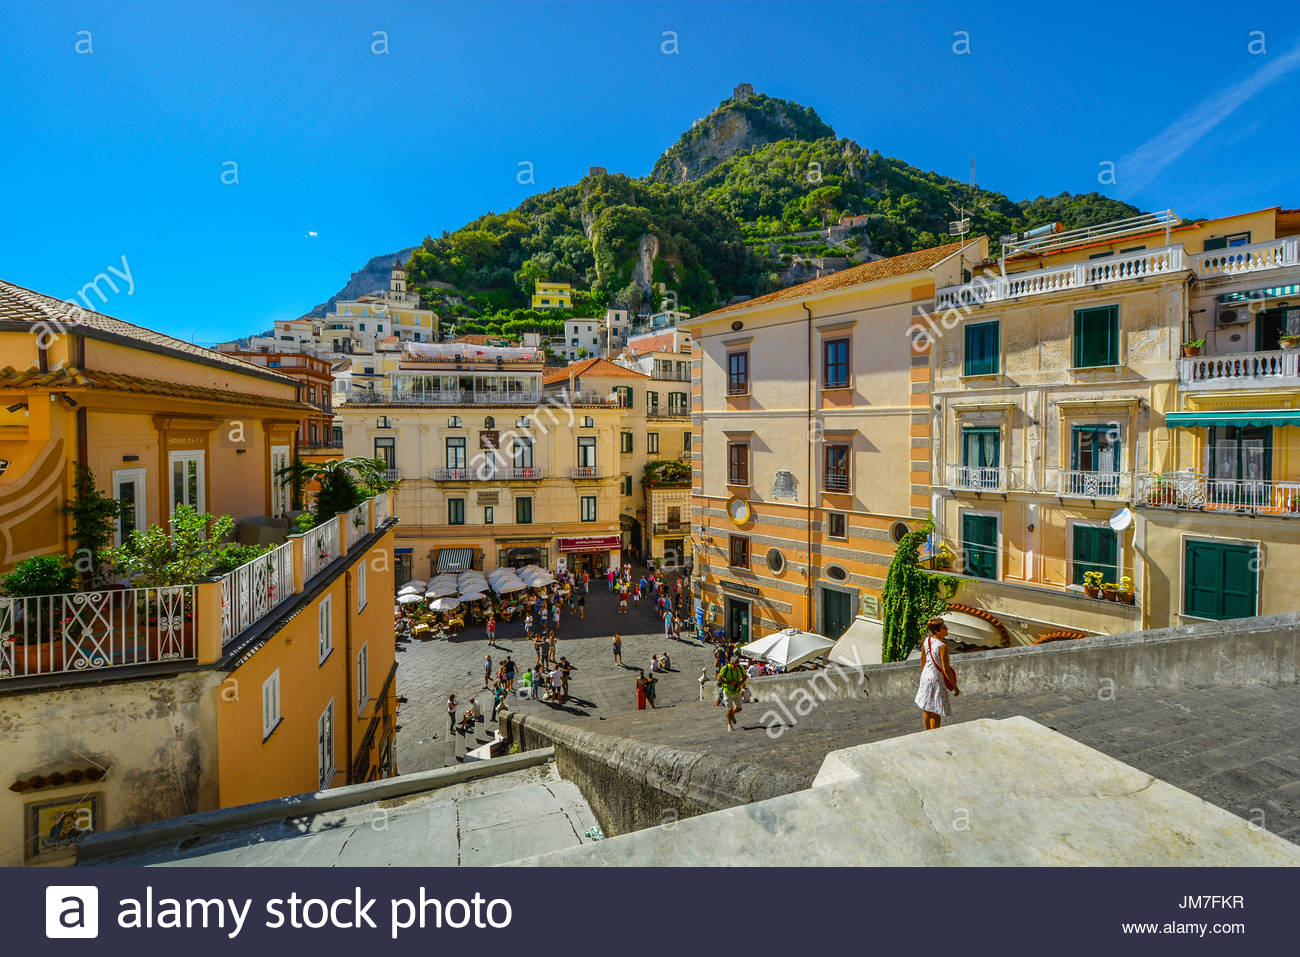 Mountain and city from the top of the stairs of the Amalfi Cathedral on the Amalfi Coast of Italy on a warm and clear summer day - Stock Image